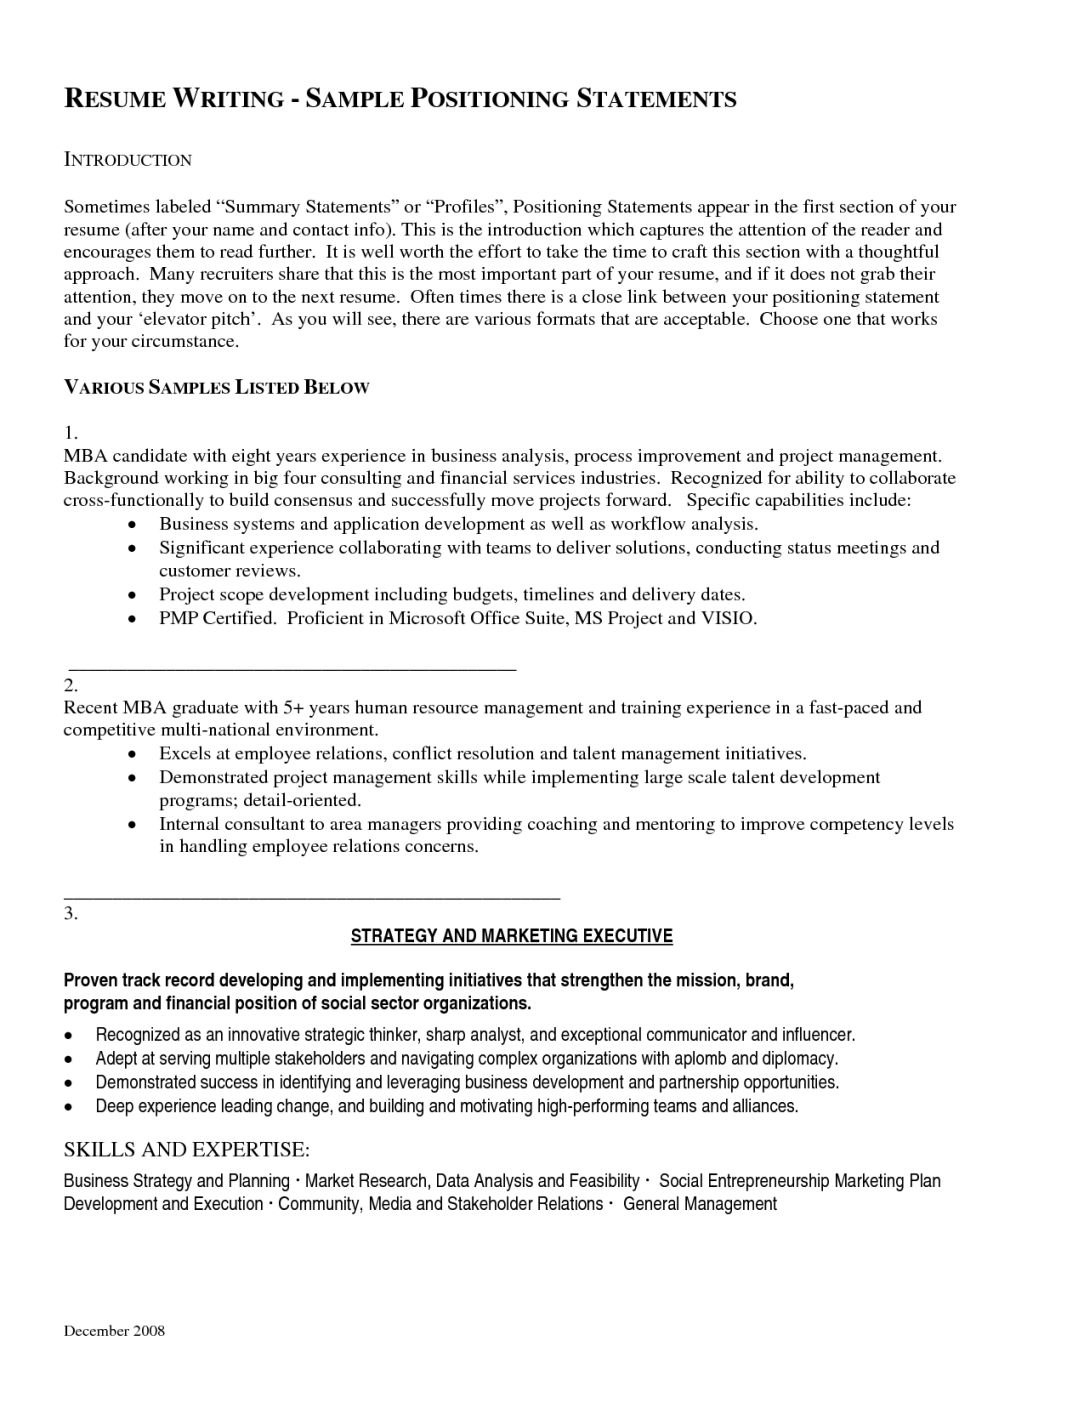 Profile Resume Examples Homepage Example Resume Profile Statement Examples For Your  Home